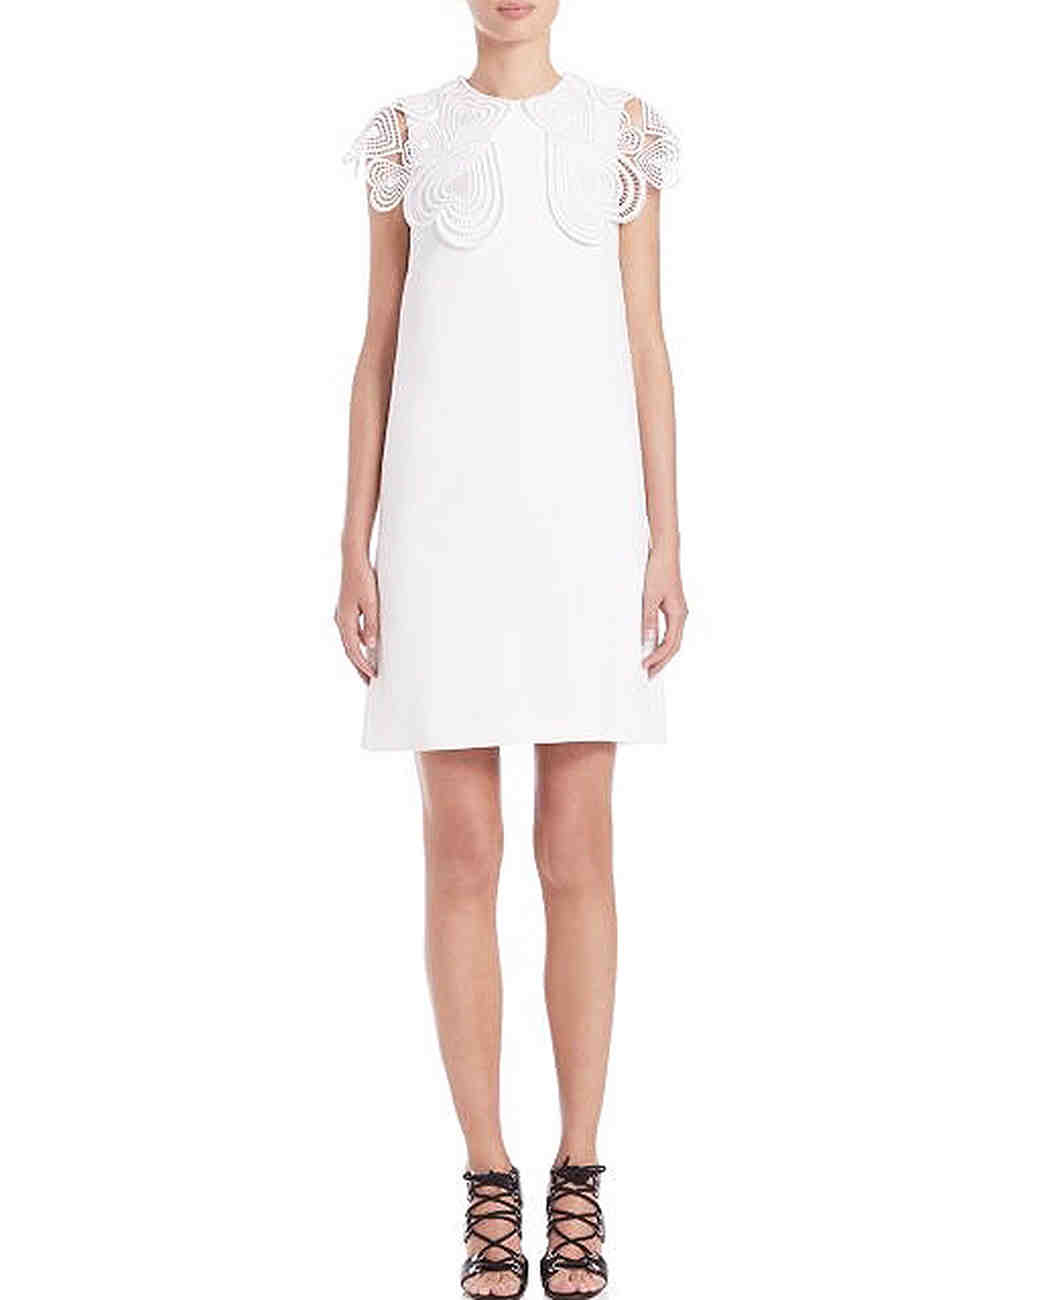 bridal-shower-dress-christopher-kane-shift-dress-0416.jpg